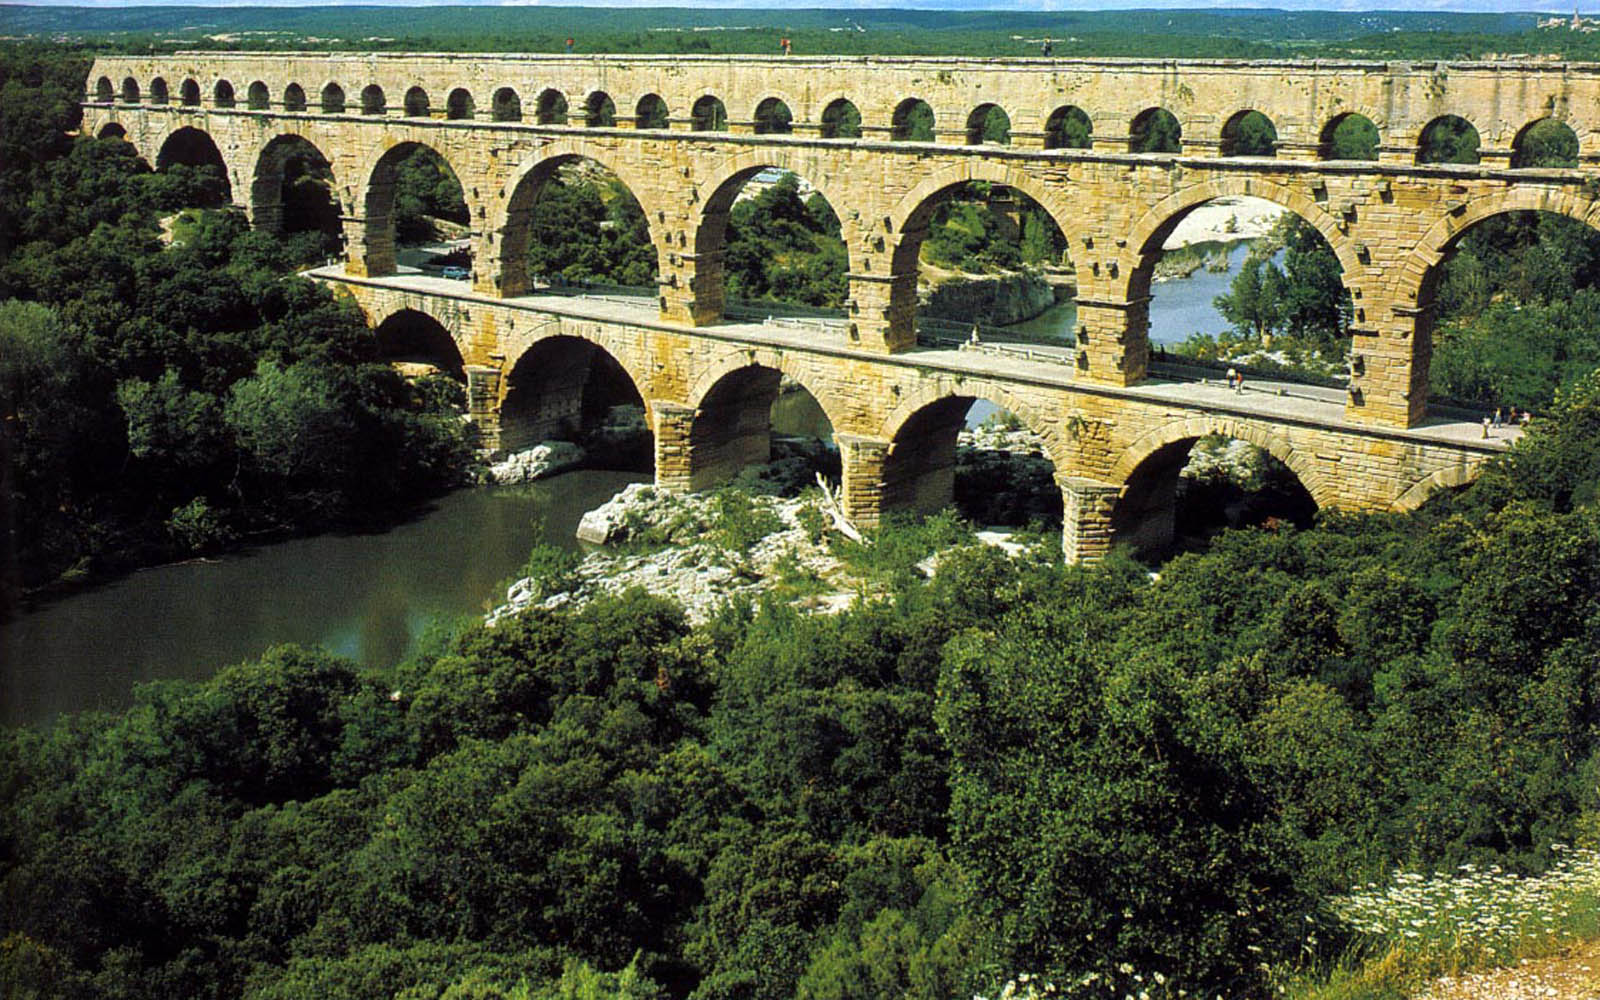 roman aqueducts A large system for carrying water from one place to another is called an aqueduct aqueducts may supply water to cities or to farms for irrigation the water may be carried underground through a tunnel or pipe, at ground level through a canal, or over the ground on a bridgepeople built aqueducts in ancient greece, babylonia, persia (now iran).